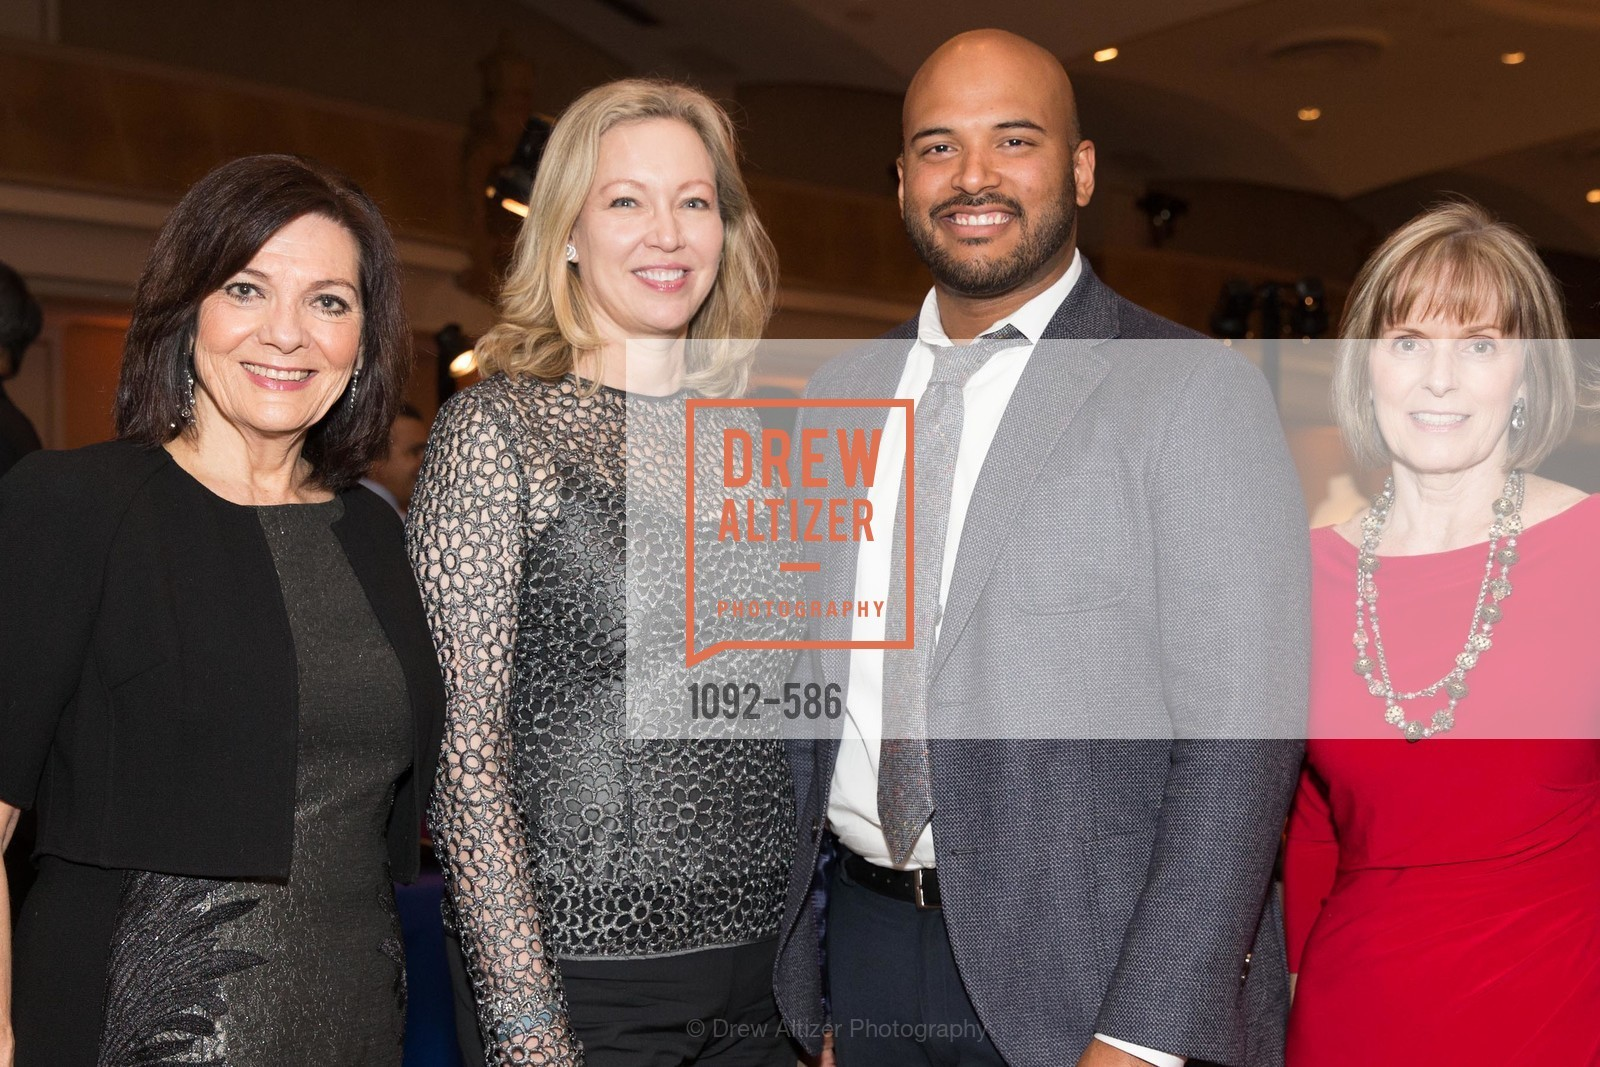 Pamela Culp, Betsy Vobach, Samil Rivera, Pat Nelson, 2014 Bay Area ARTHRITIS AUXILLIARY Benefit & Fashion Show, US, October 1st, 2014,Drew Altizer, Drew Altizer Photography, full-service agency, private events, San Francisco photographer, photographer california